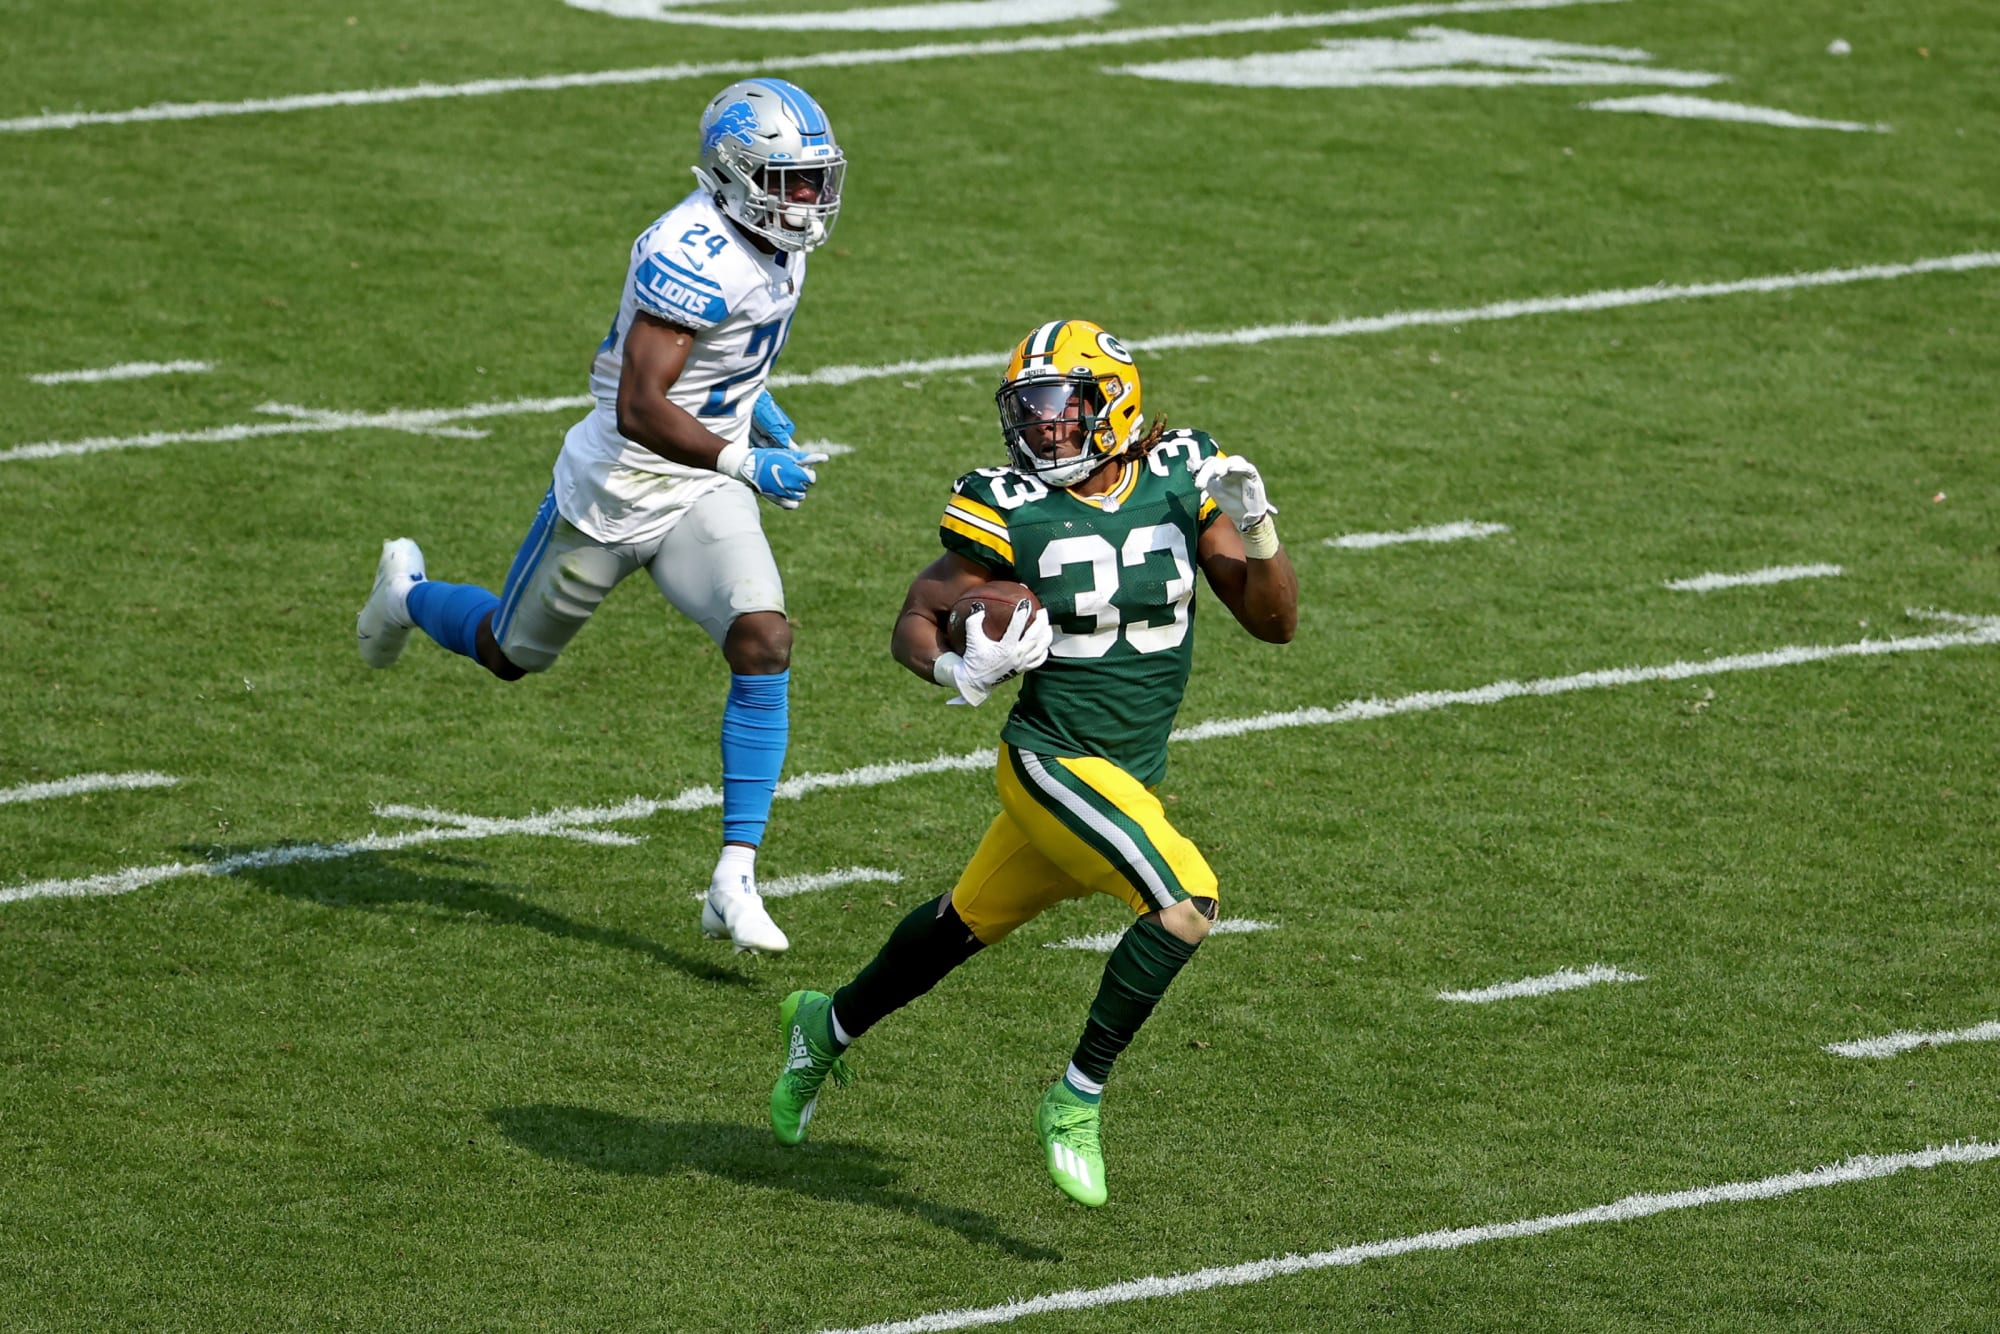 Highlights of Green Bay Packers' offensive explosion vs Detroit Lions